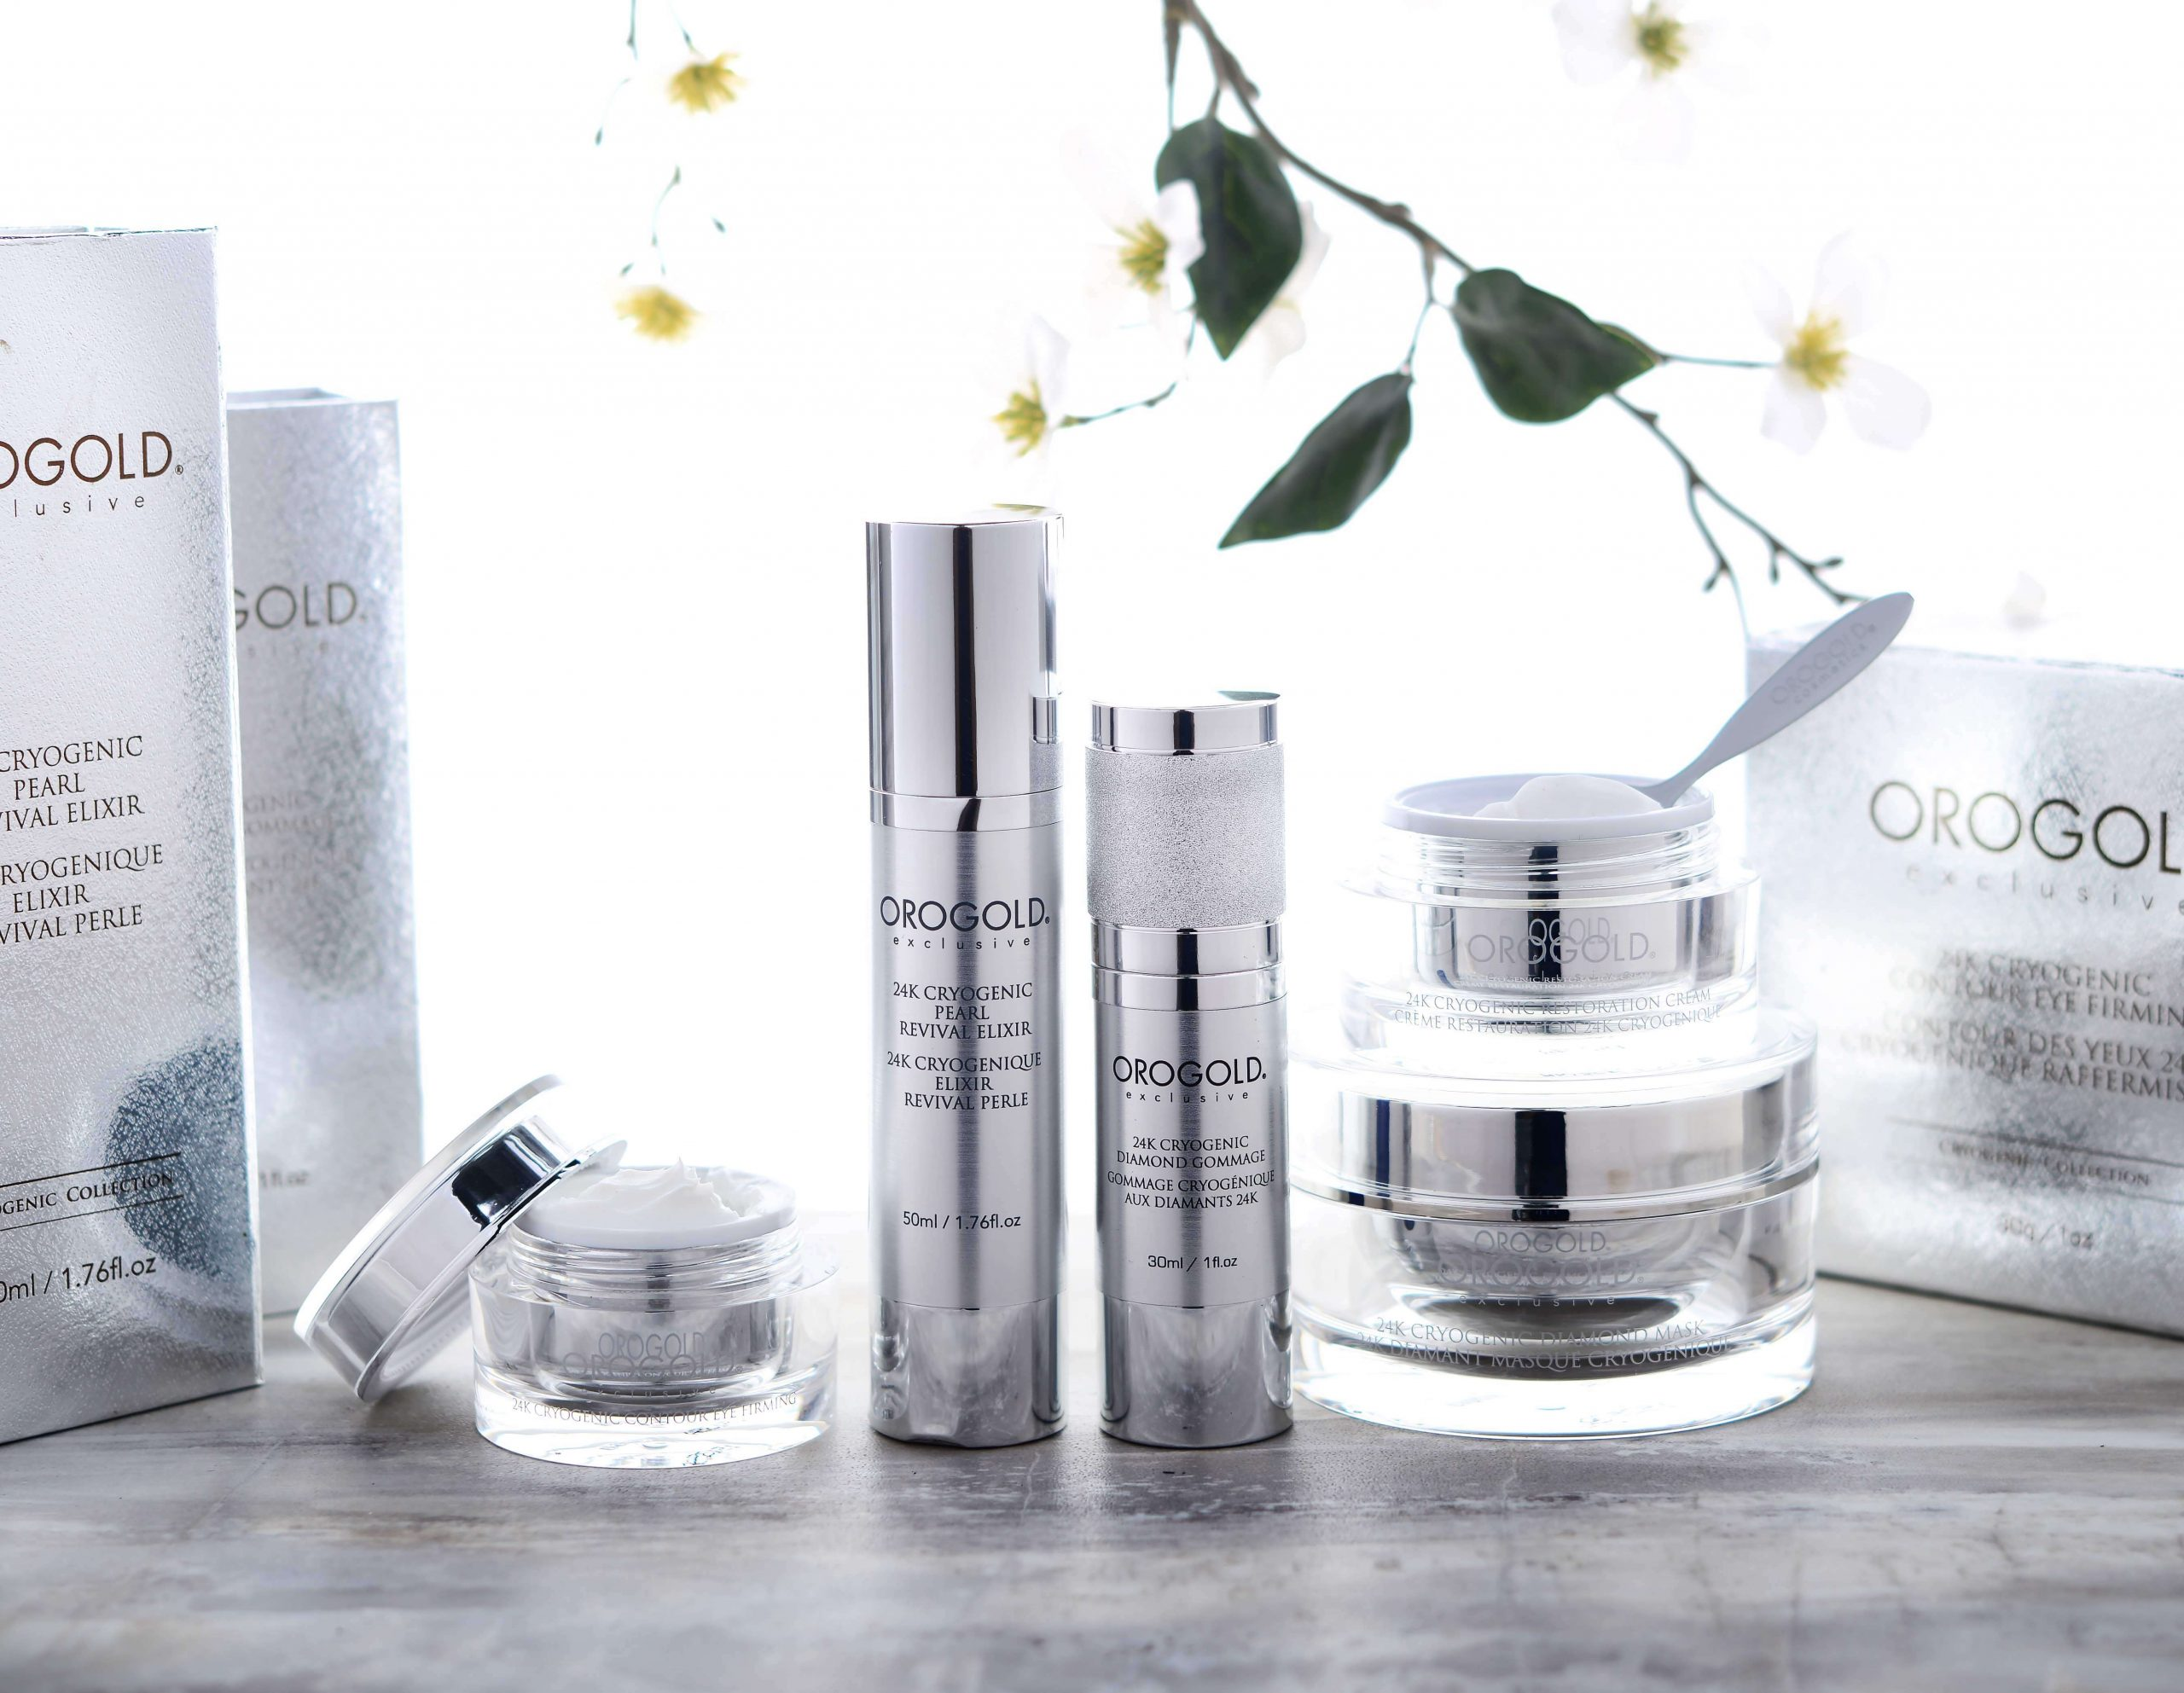 OROGOLD Exclusive Cryogenic Collection